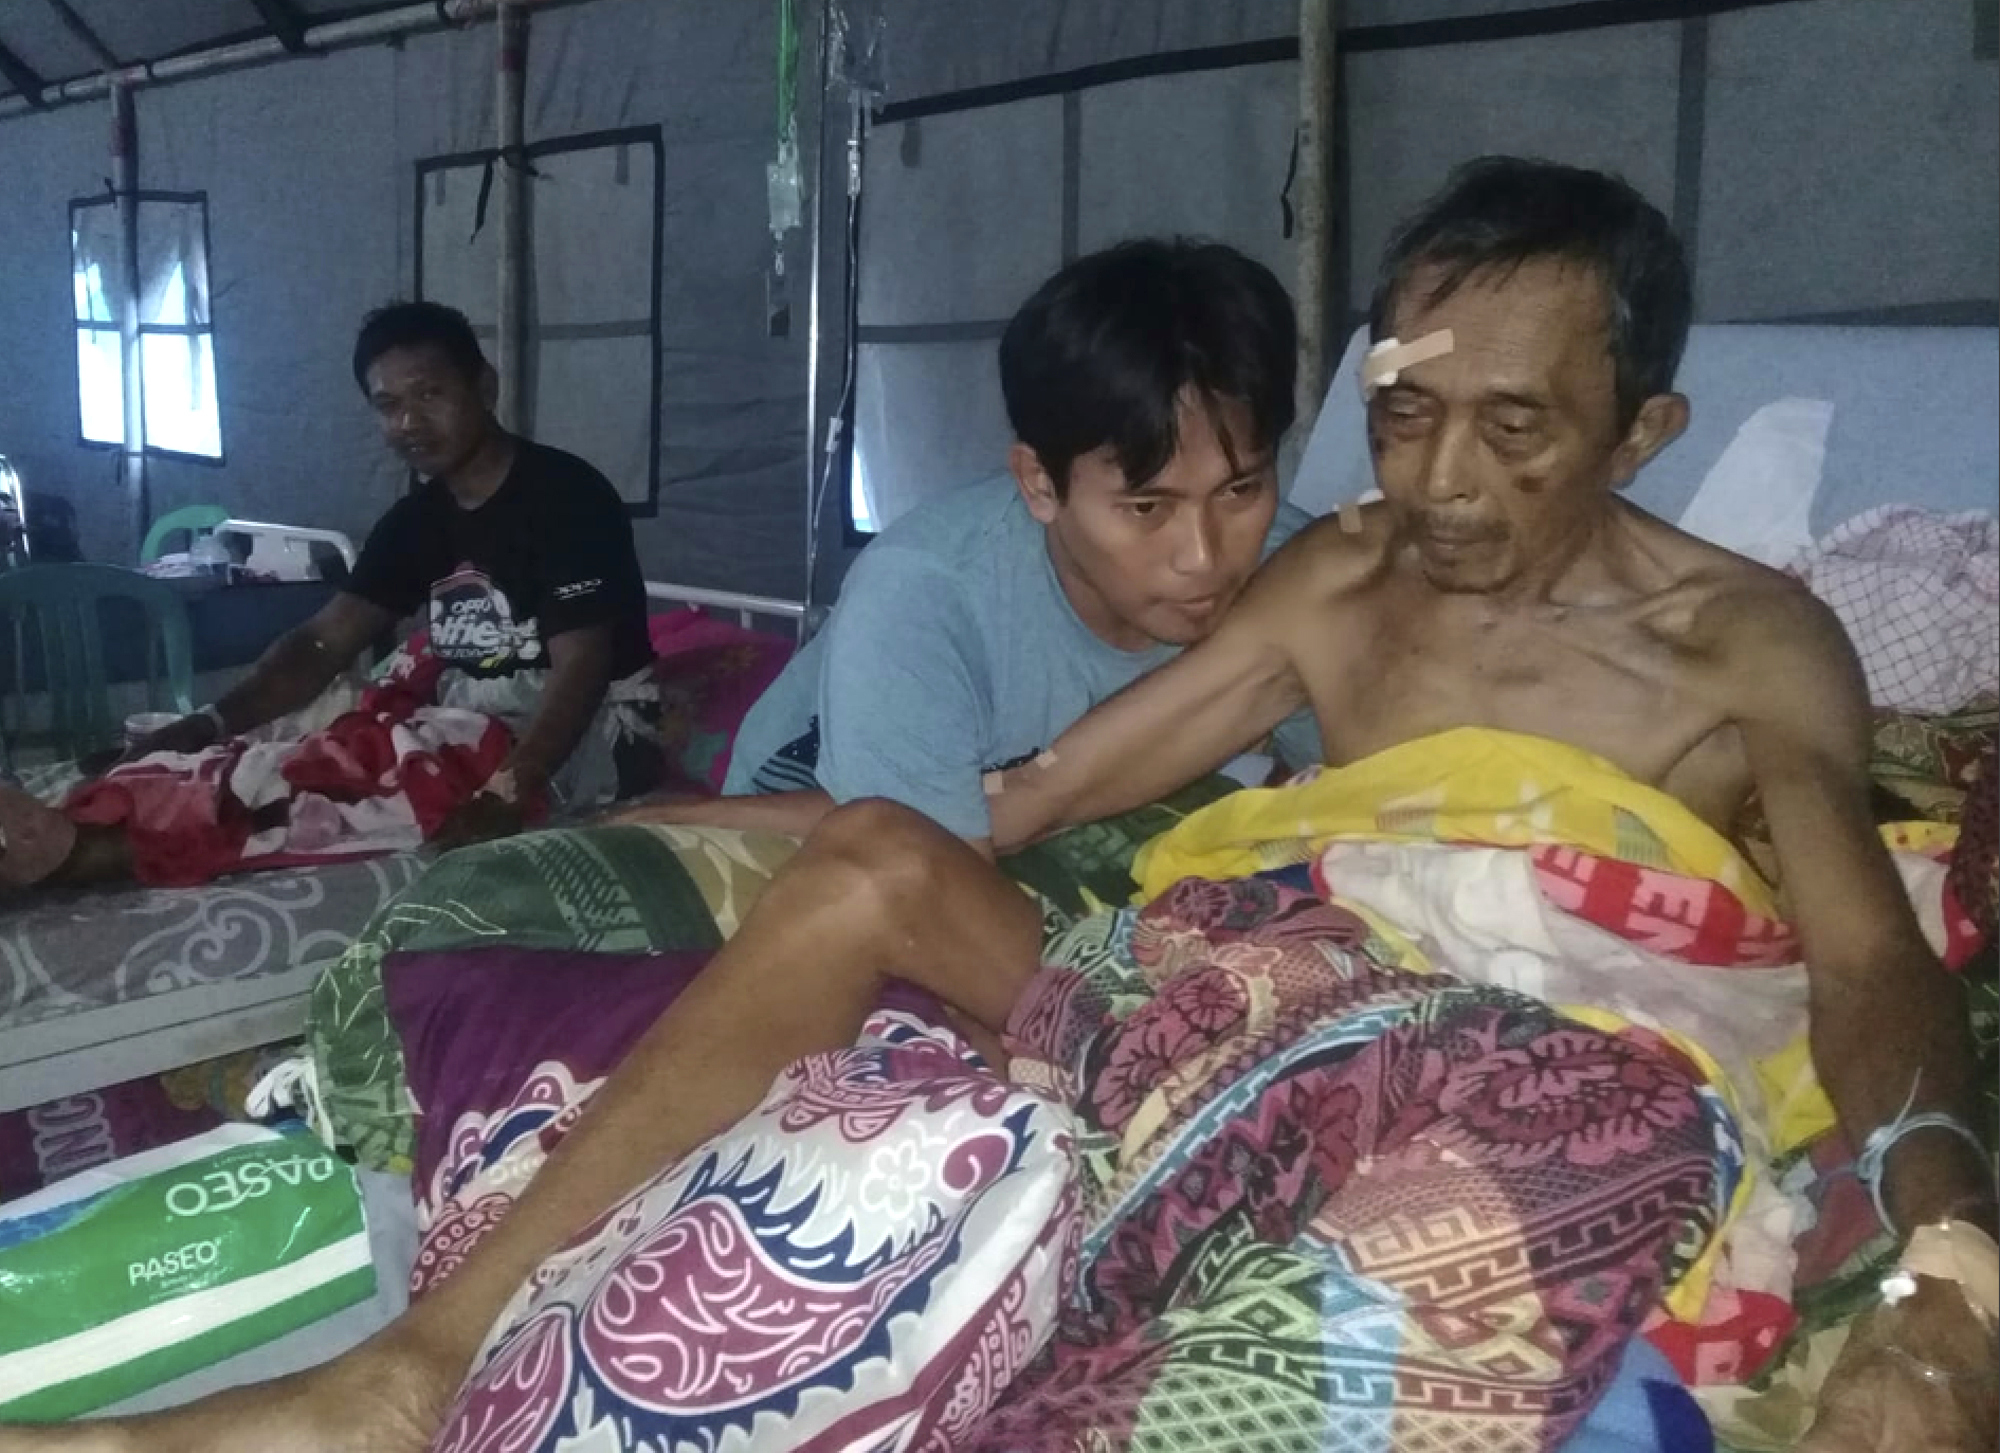 Earthquake-affected patients are treated at a makeshift hospital in Poso, Indonesia